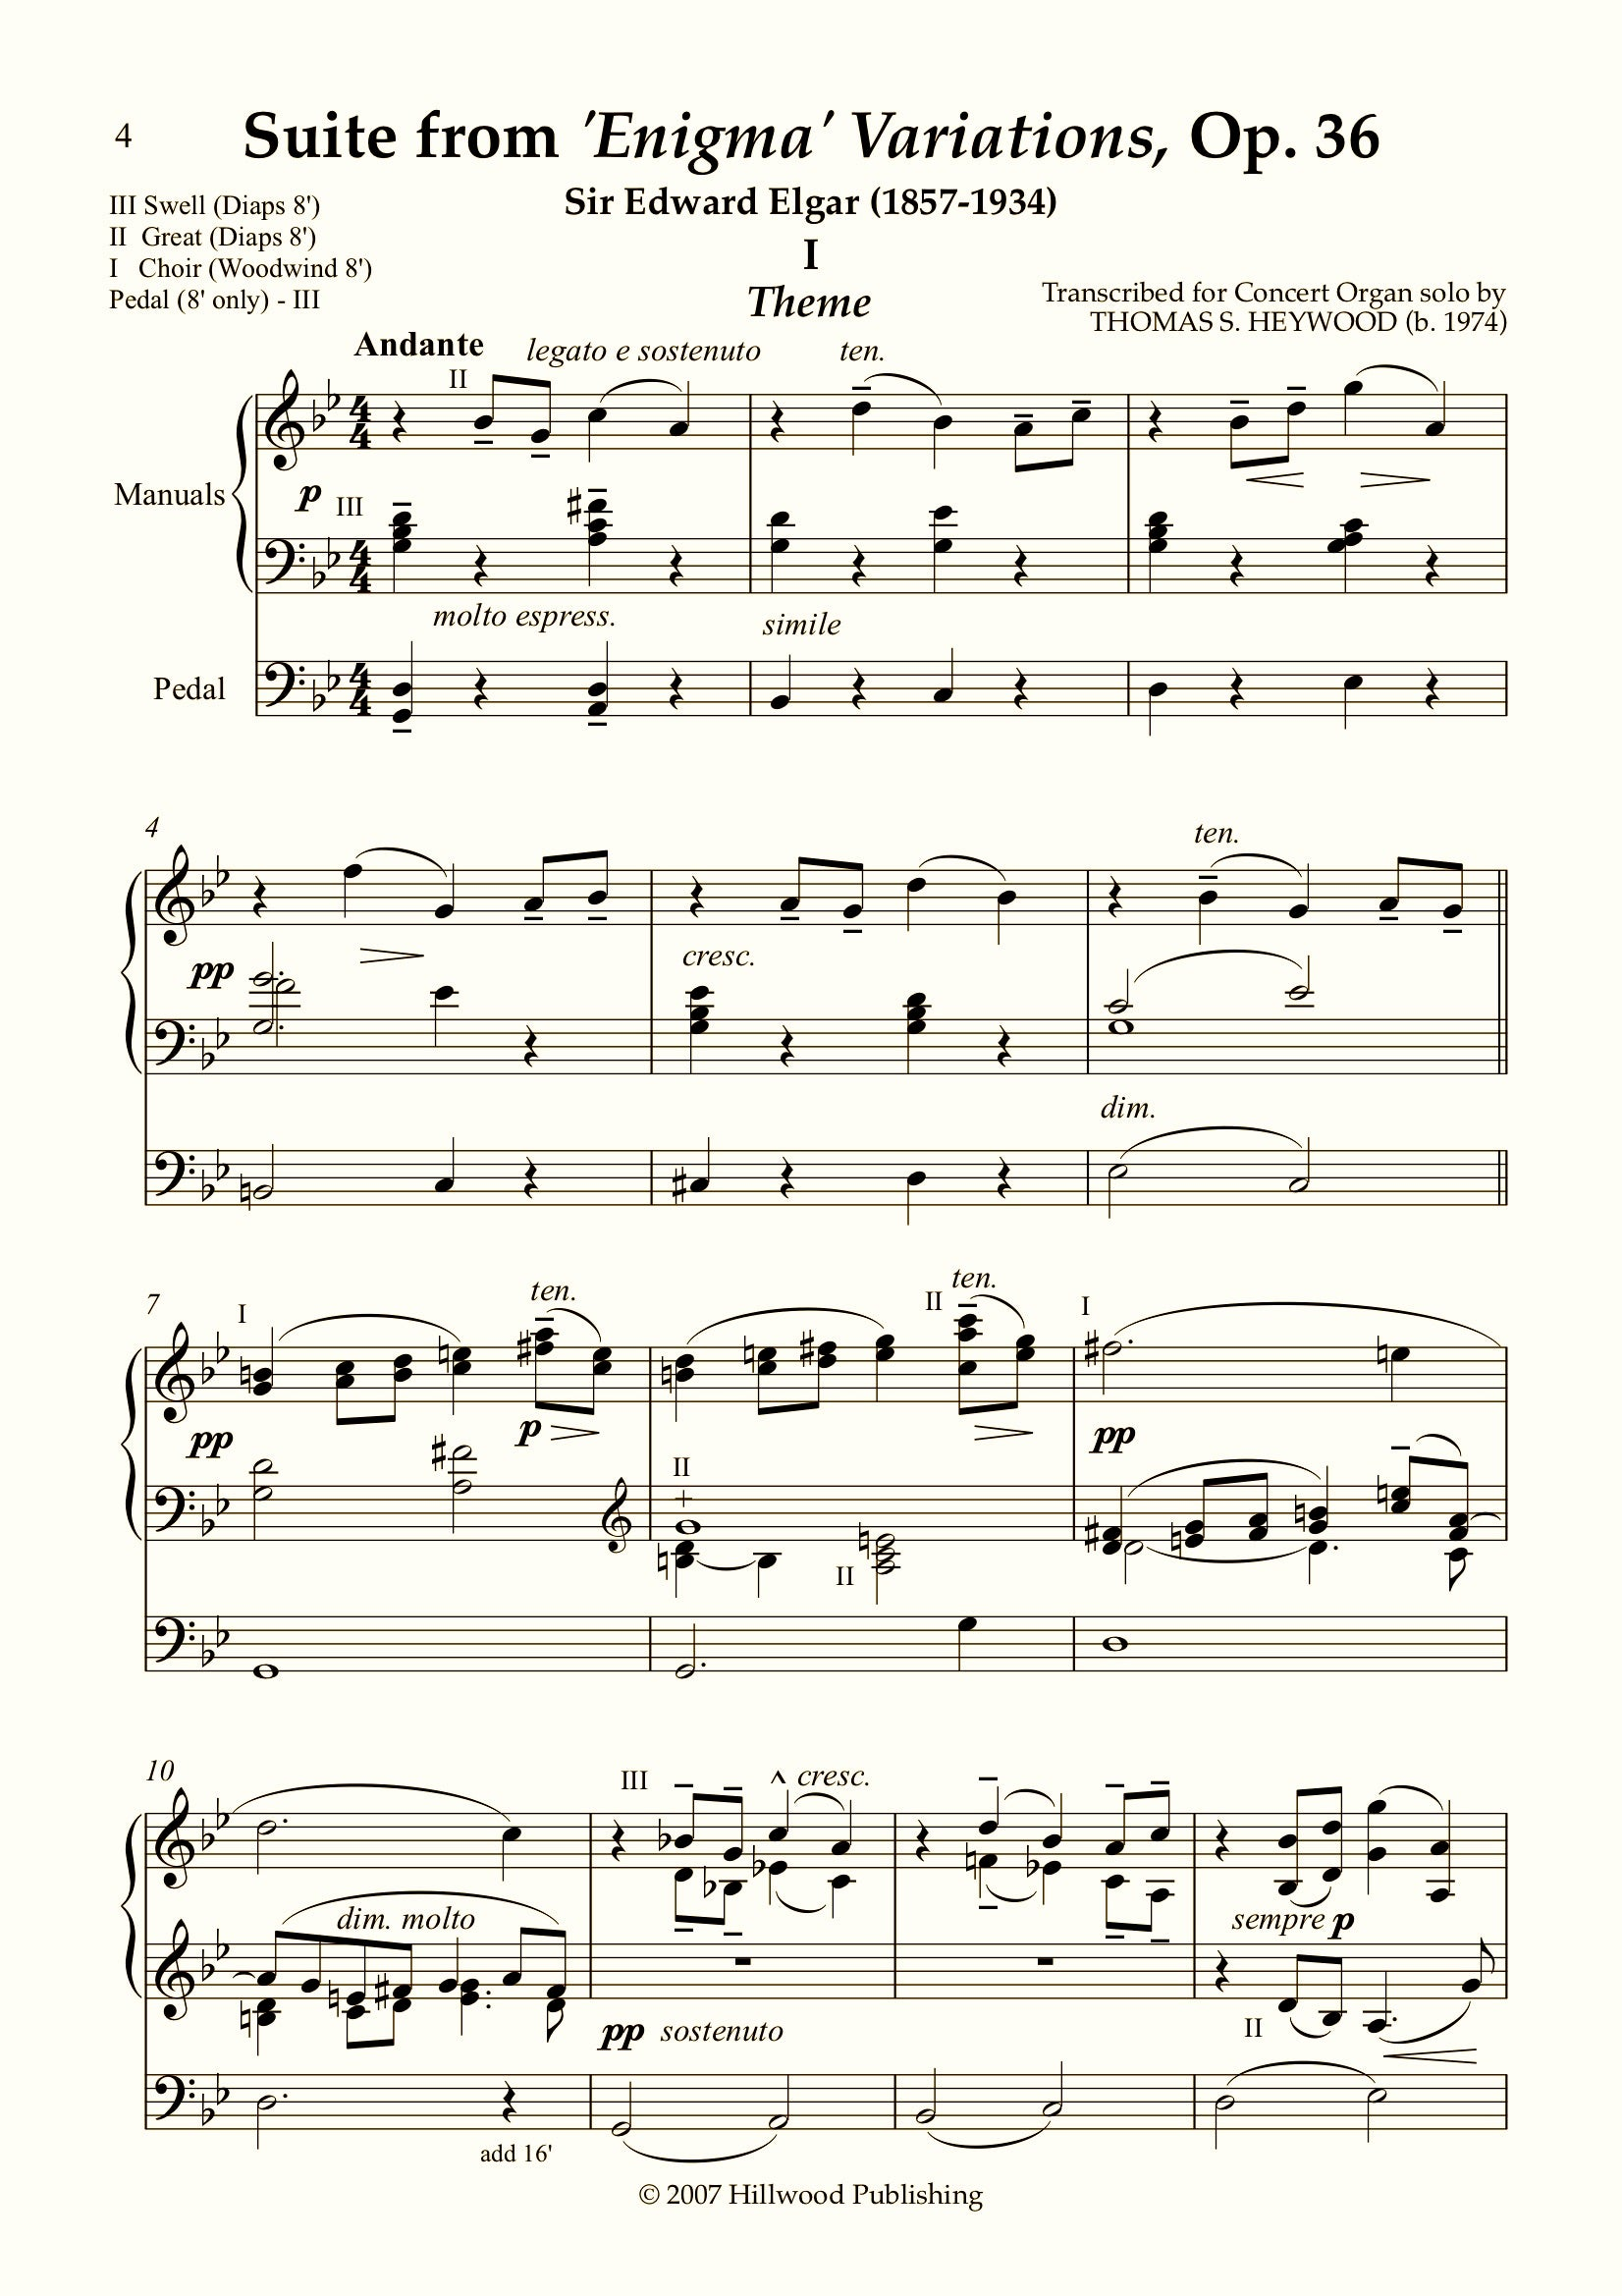 Elgar/Heywood - Suite from the 'Enigma' Variations, Op. 36 (Score) - Concert Organ International